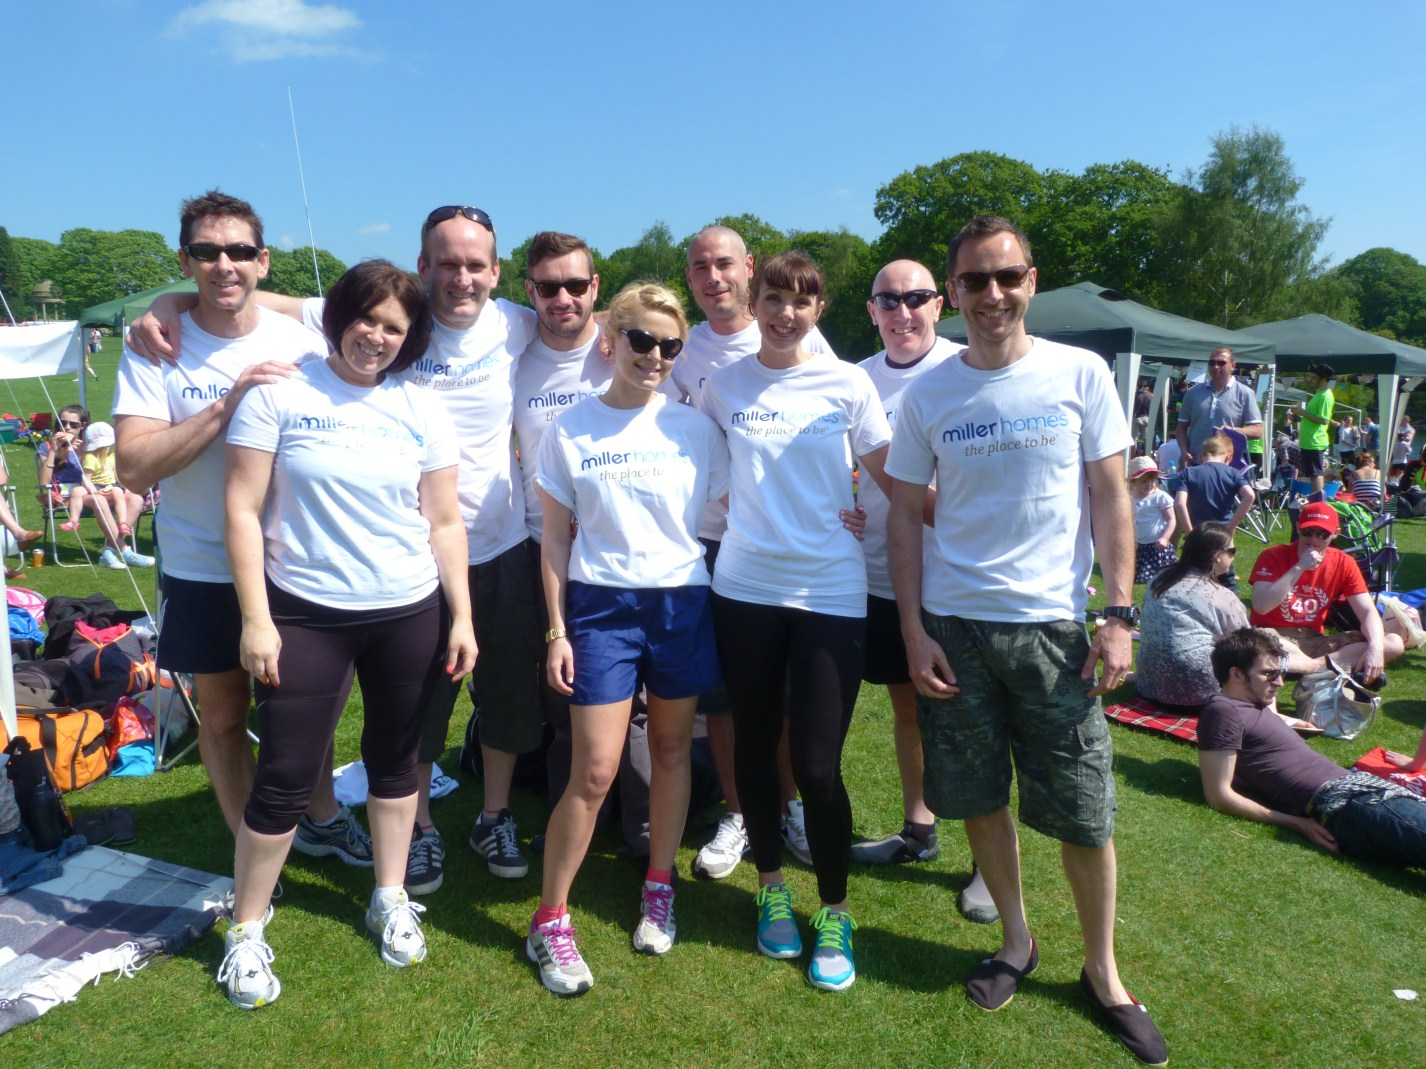 The Miller Homes dragon boat team raised £500 for the children's hospice.